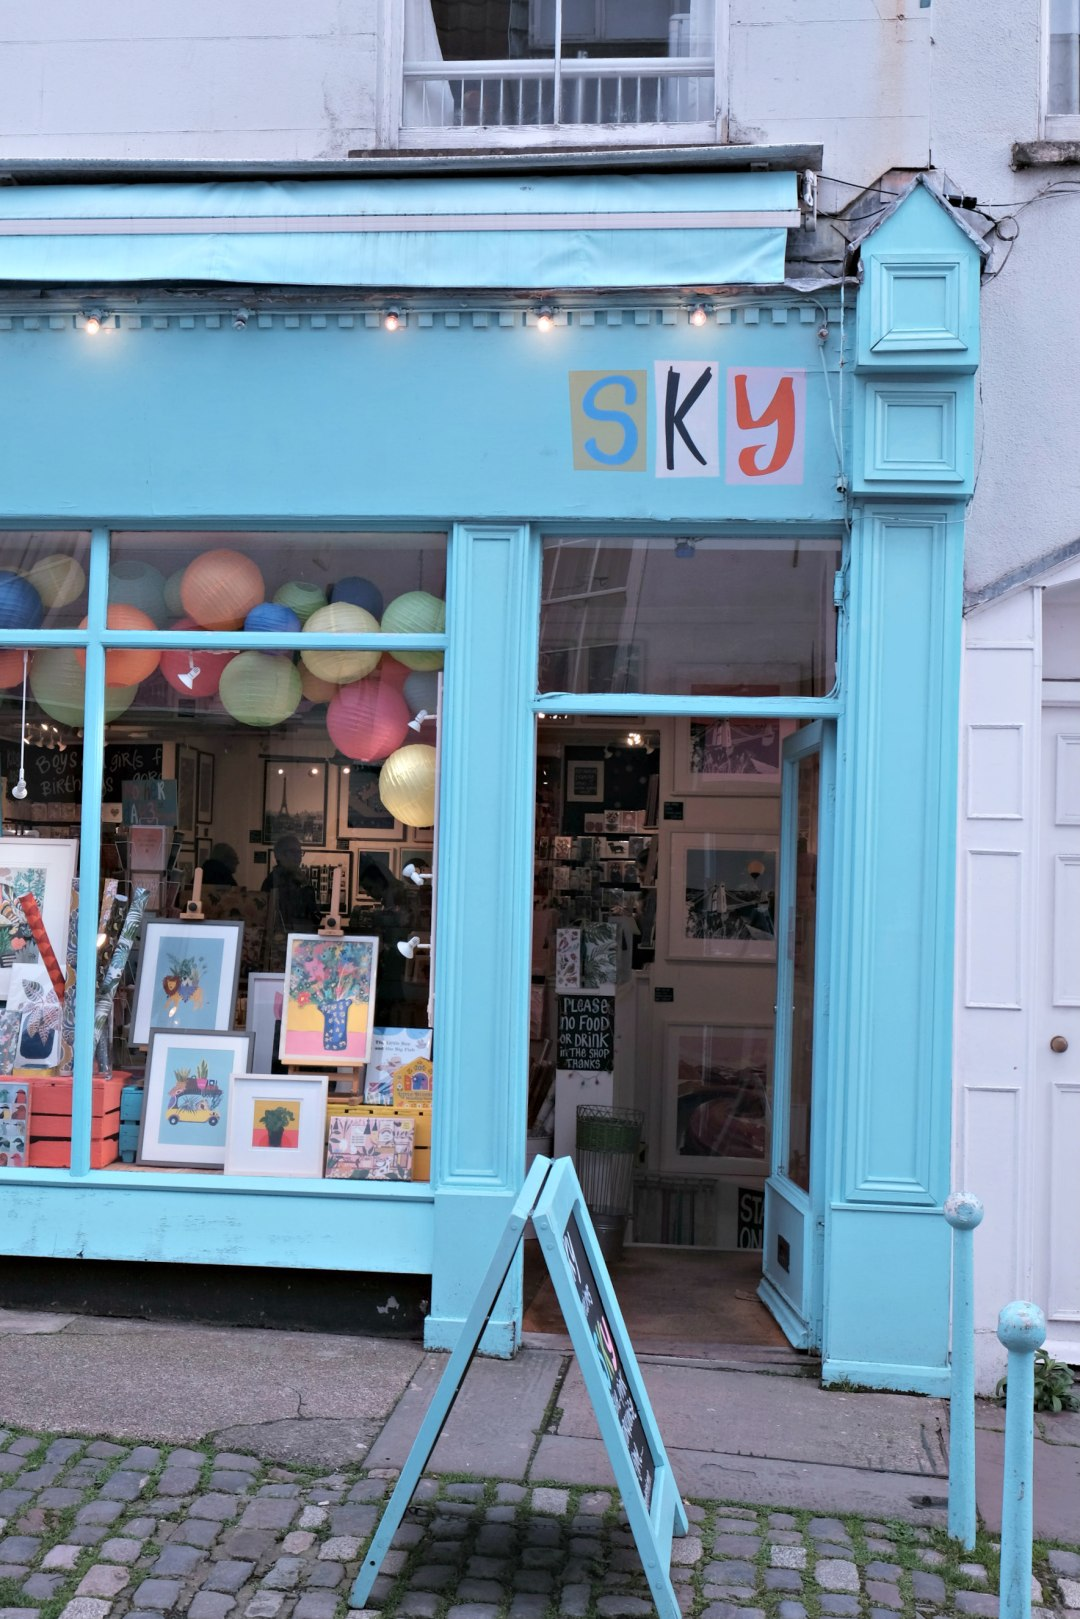 Picture of Sky shop in Clifton Village.  48 hours in clifton itinerary.